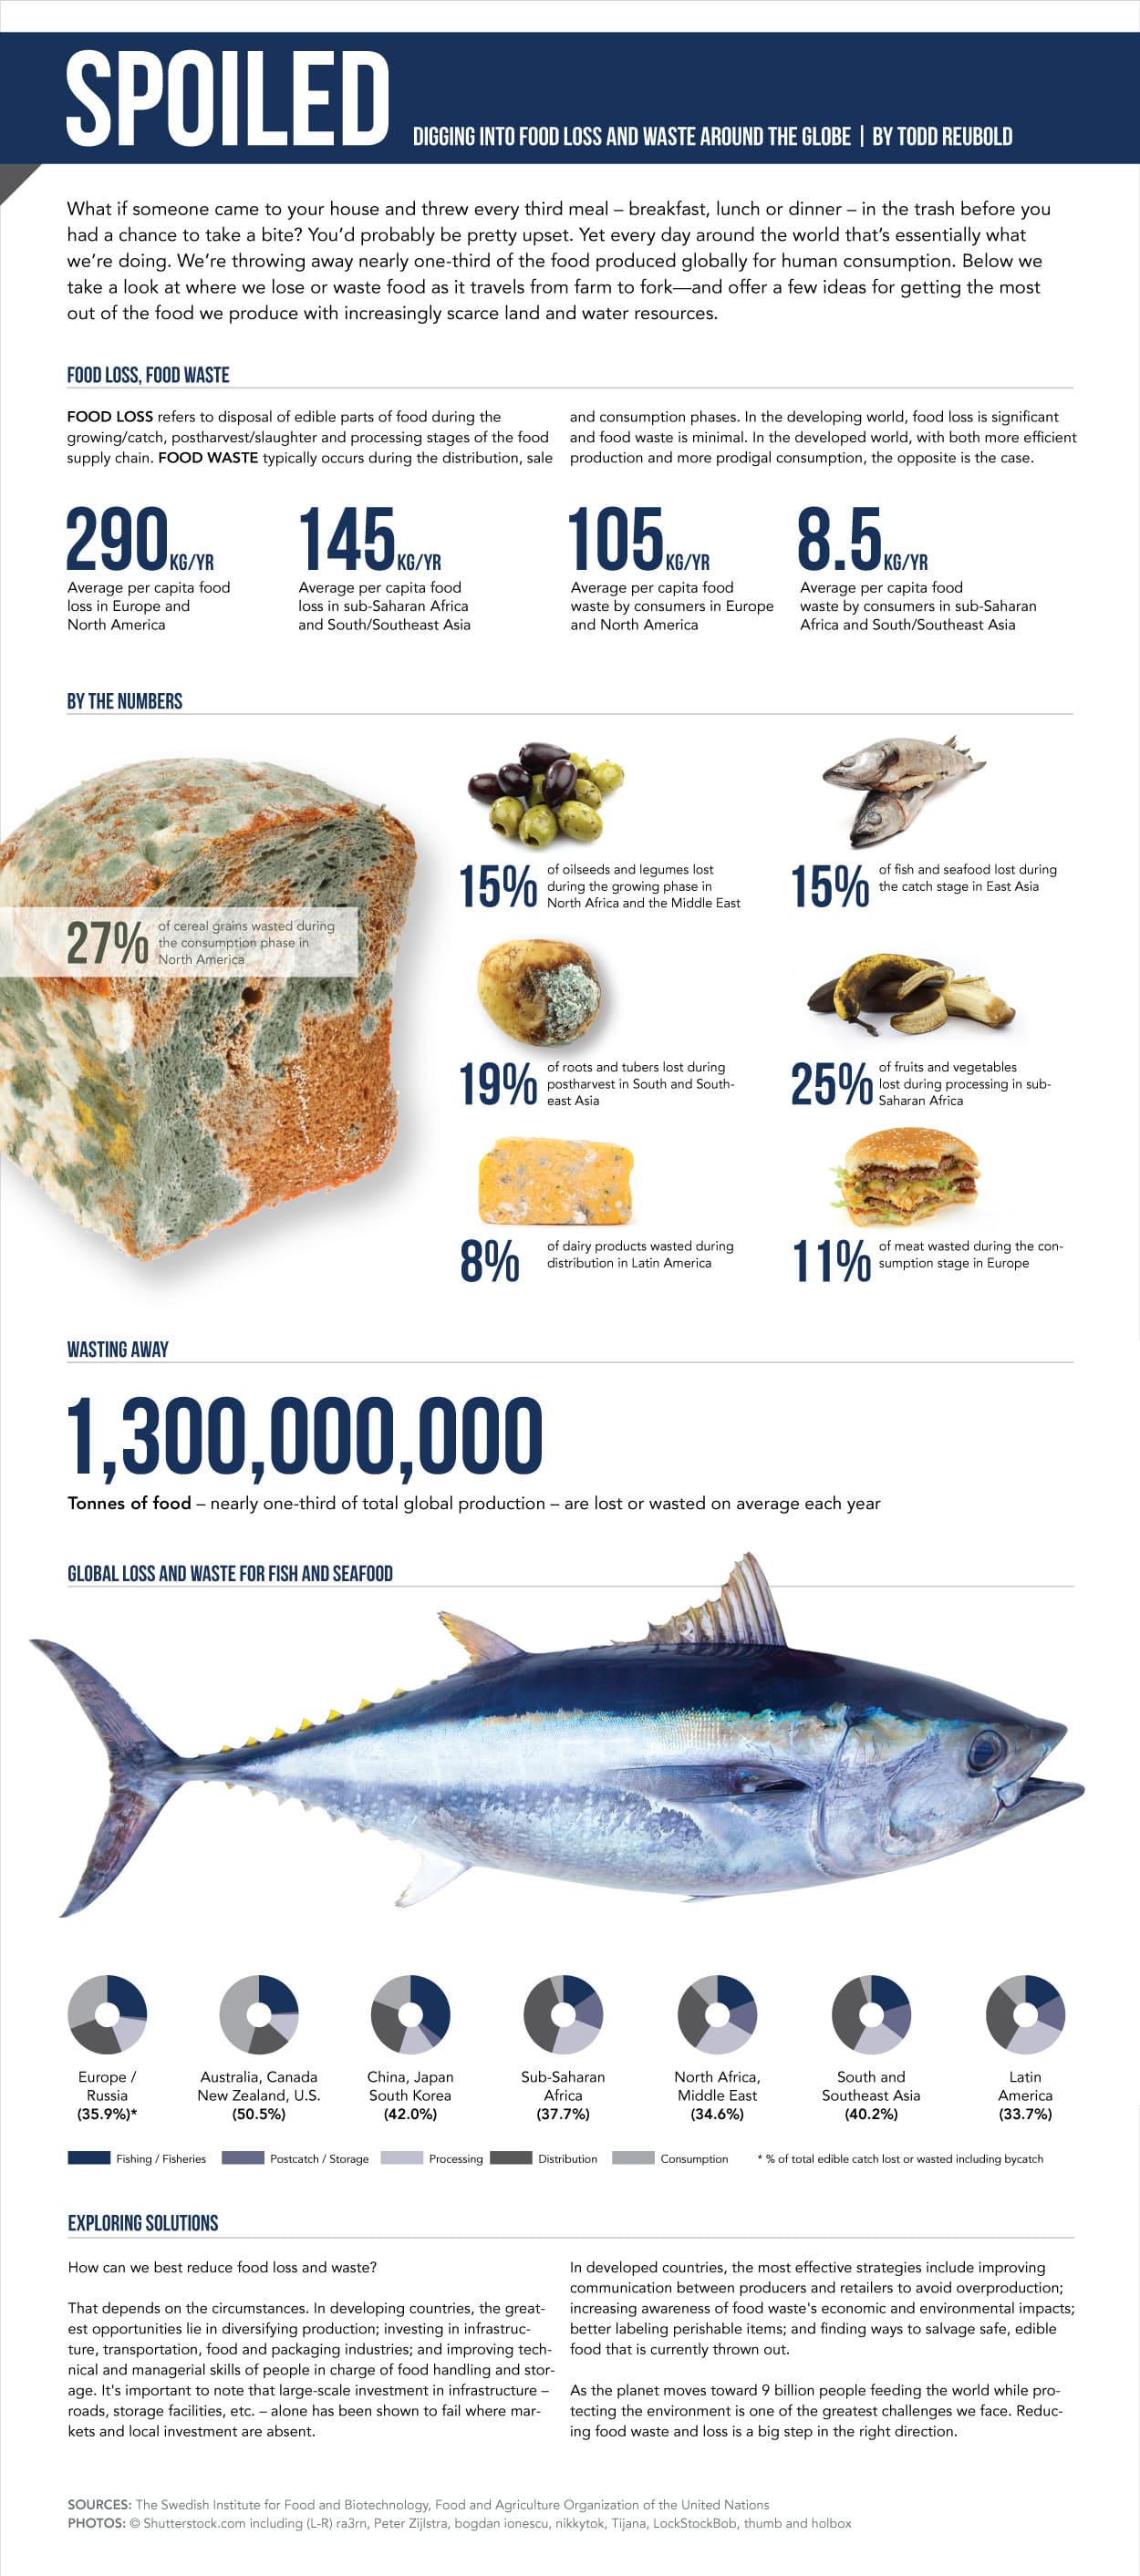 infographic_food_waste3.jpg